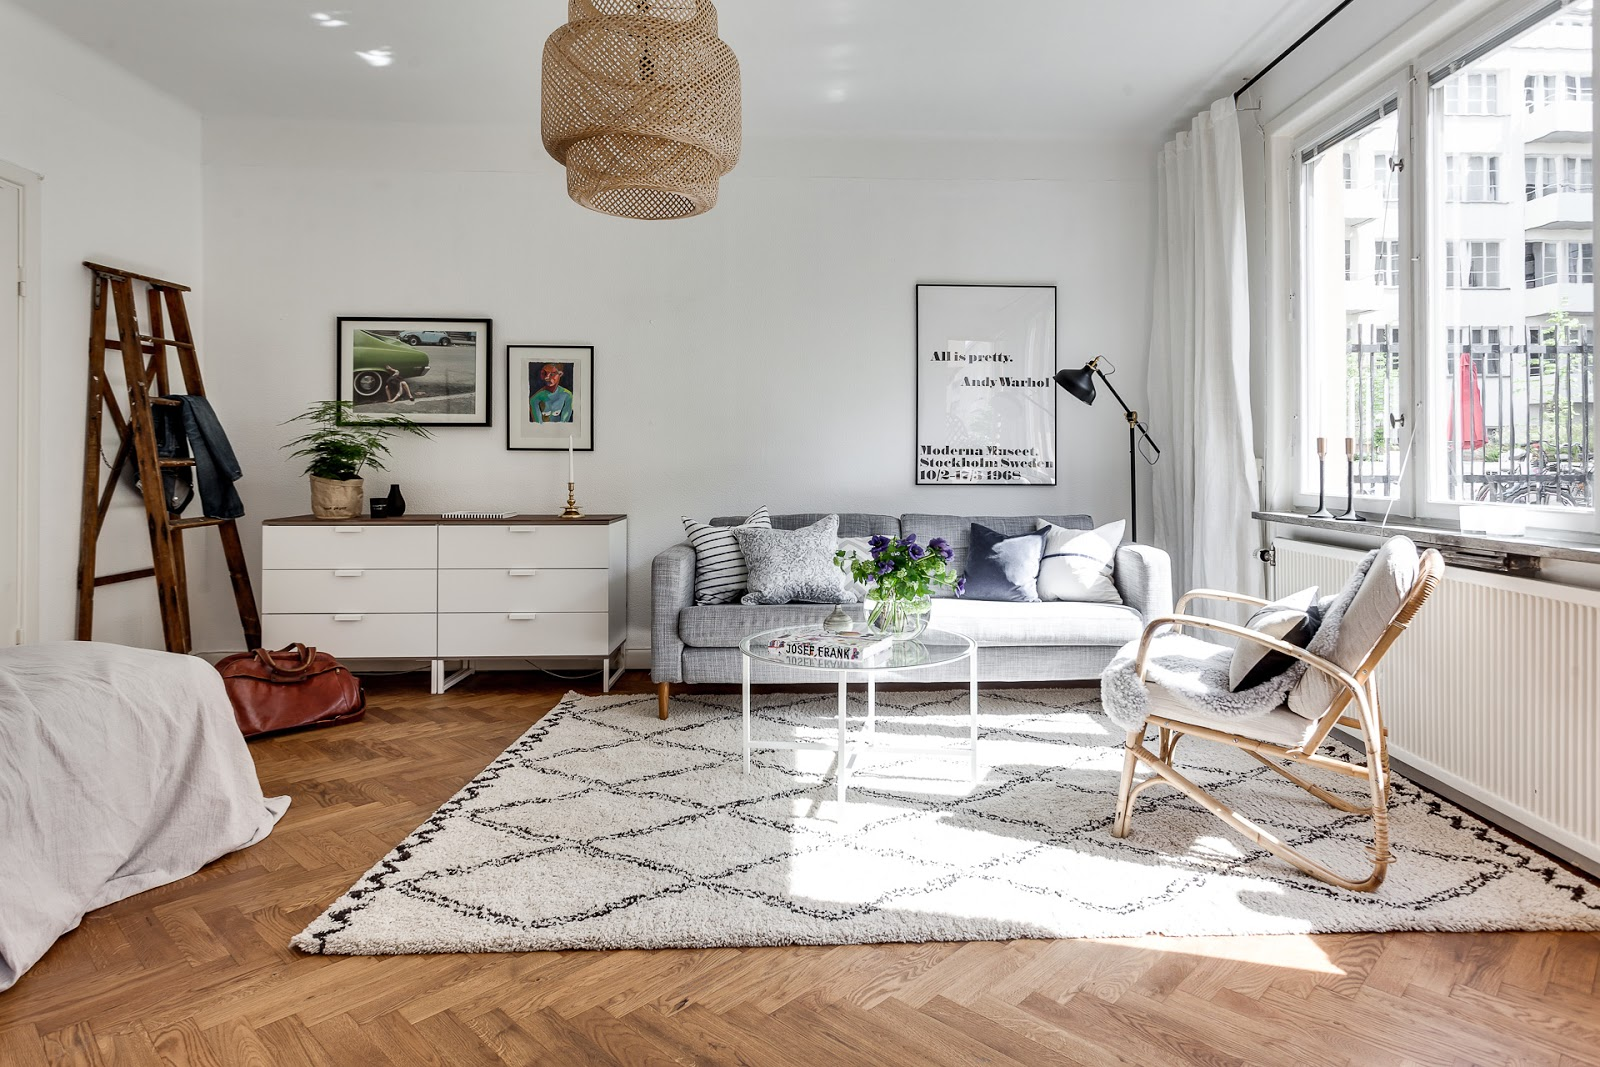 DREAMHOUSE : styling - all is pretty